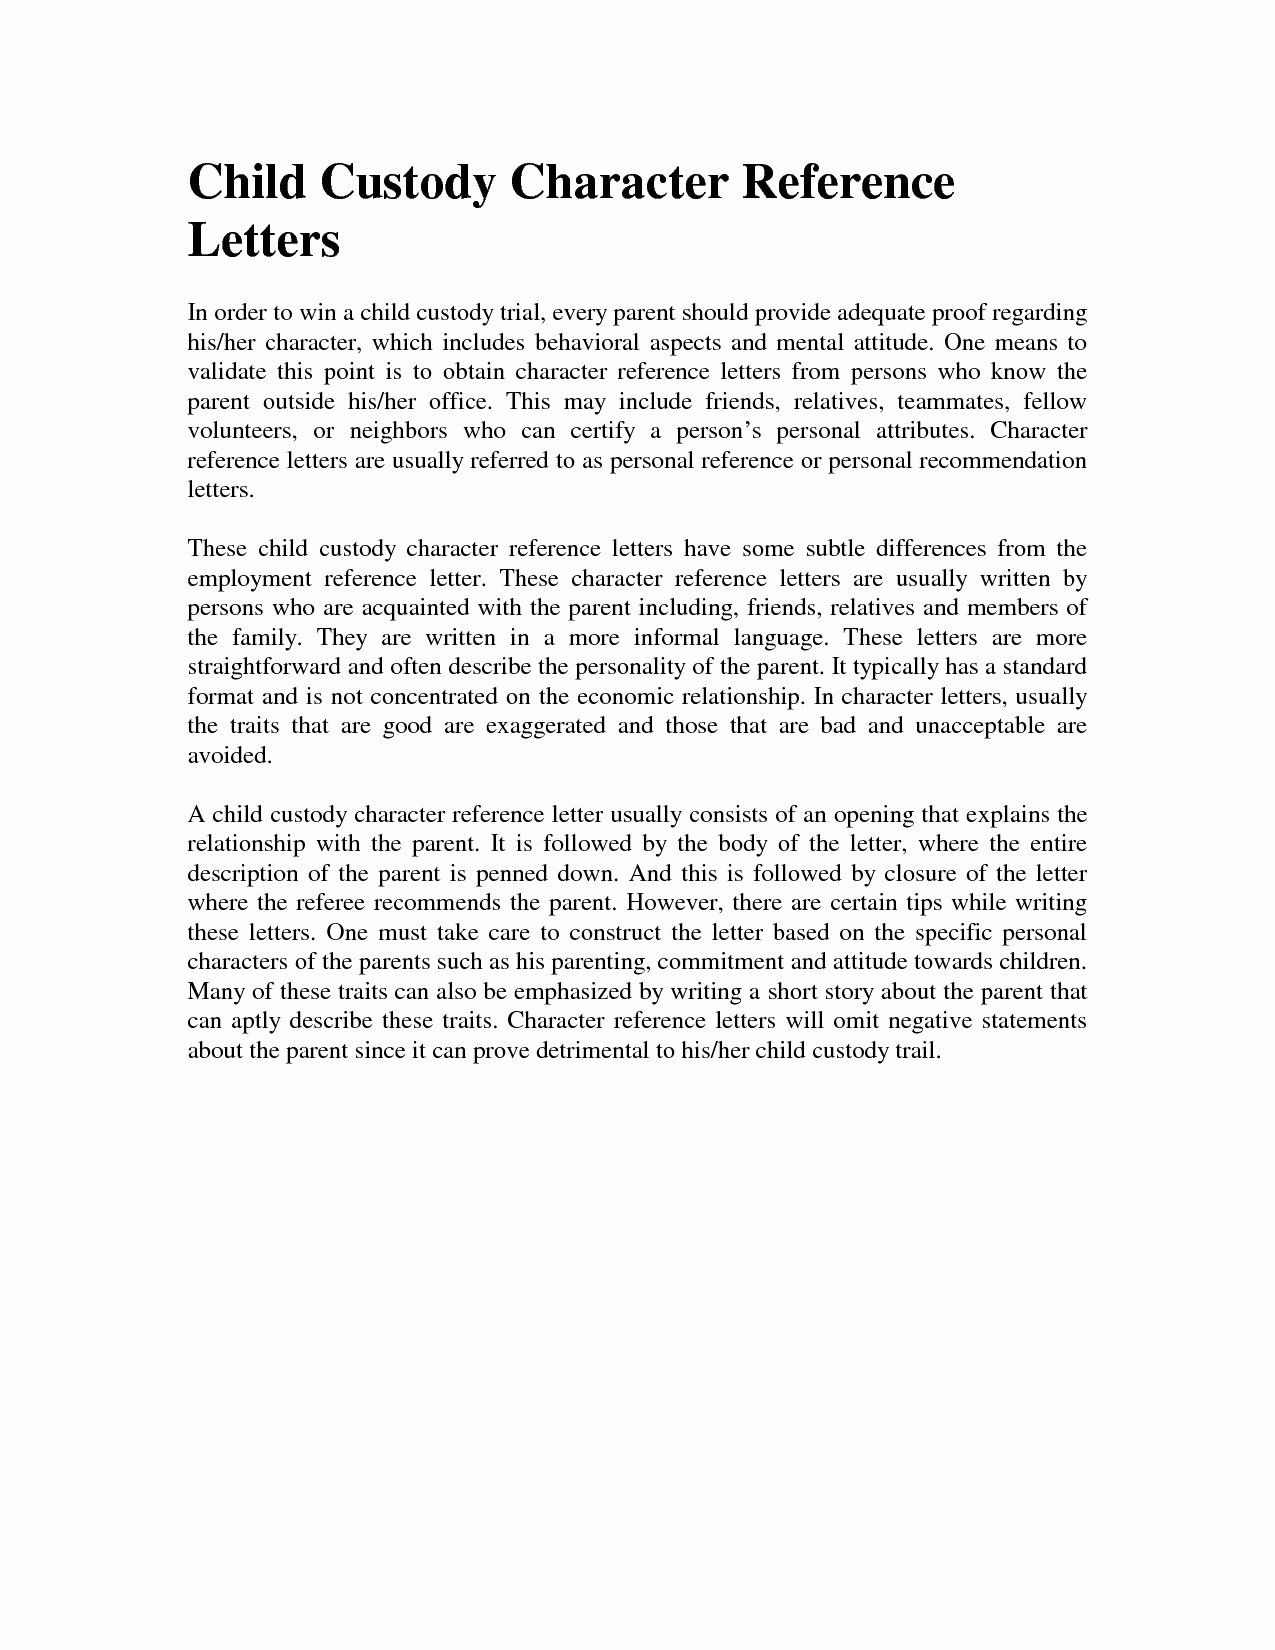 Child Custody Letter Template Elegant Child Custody Letter Template Samples